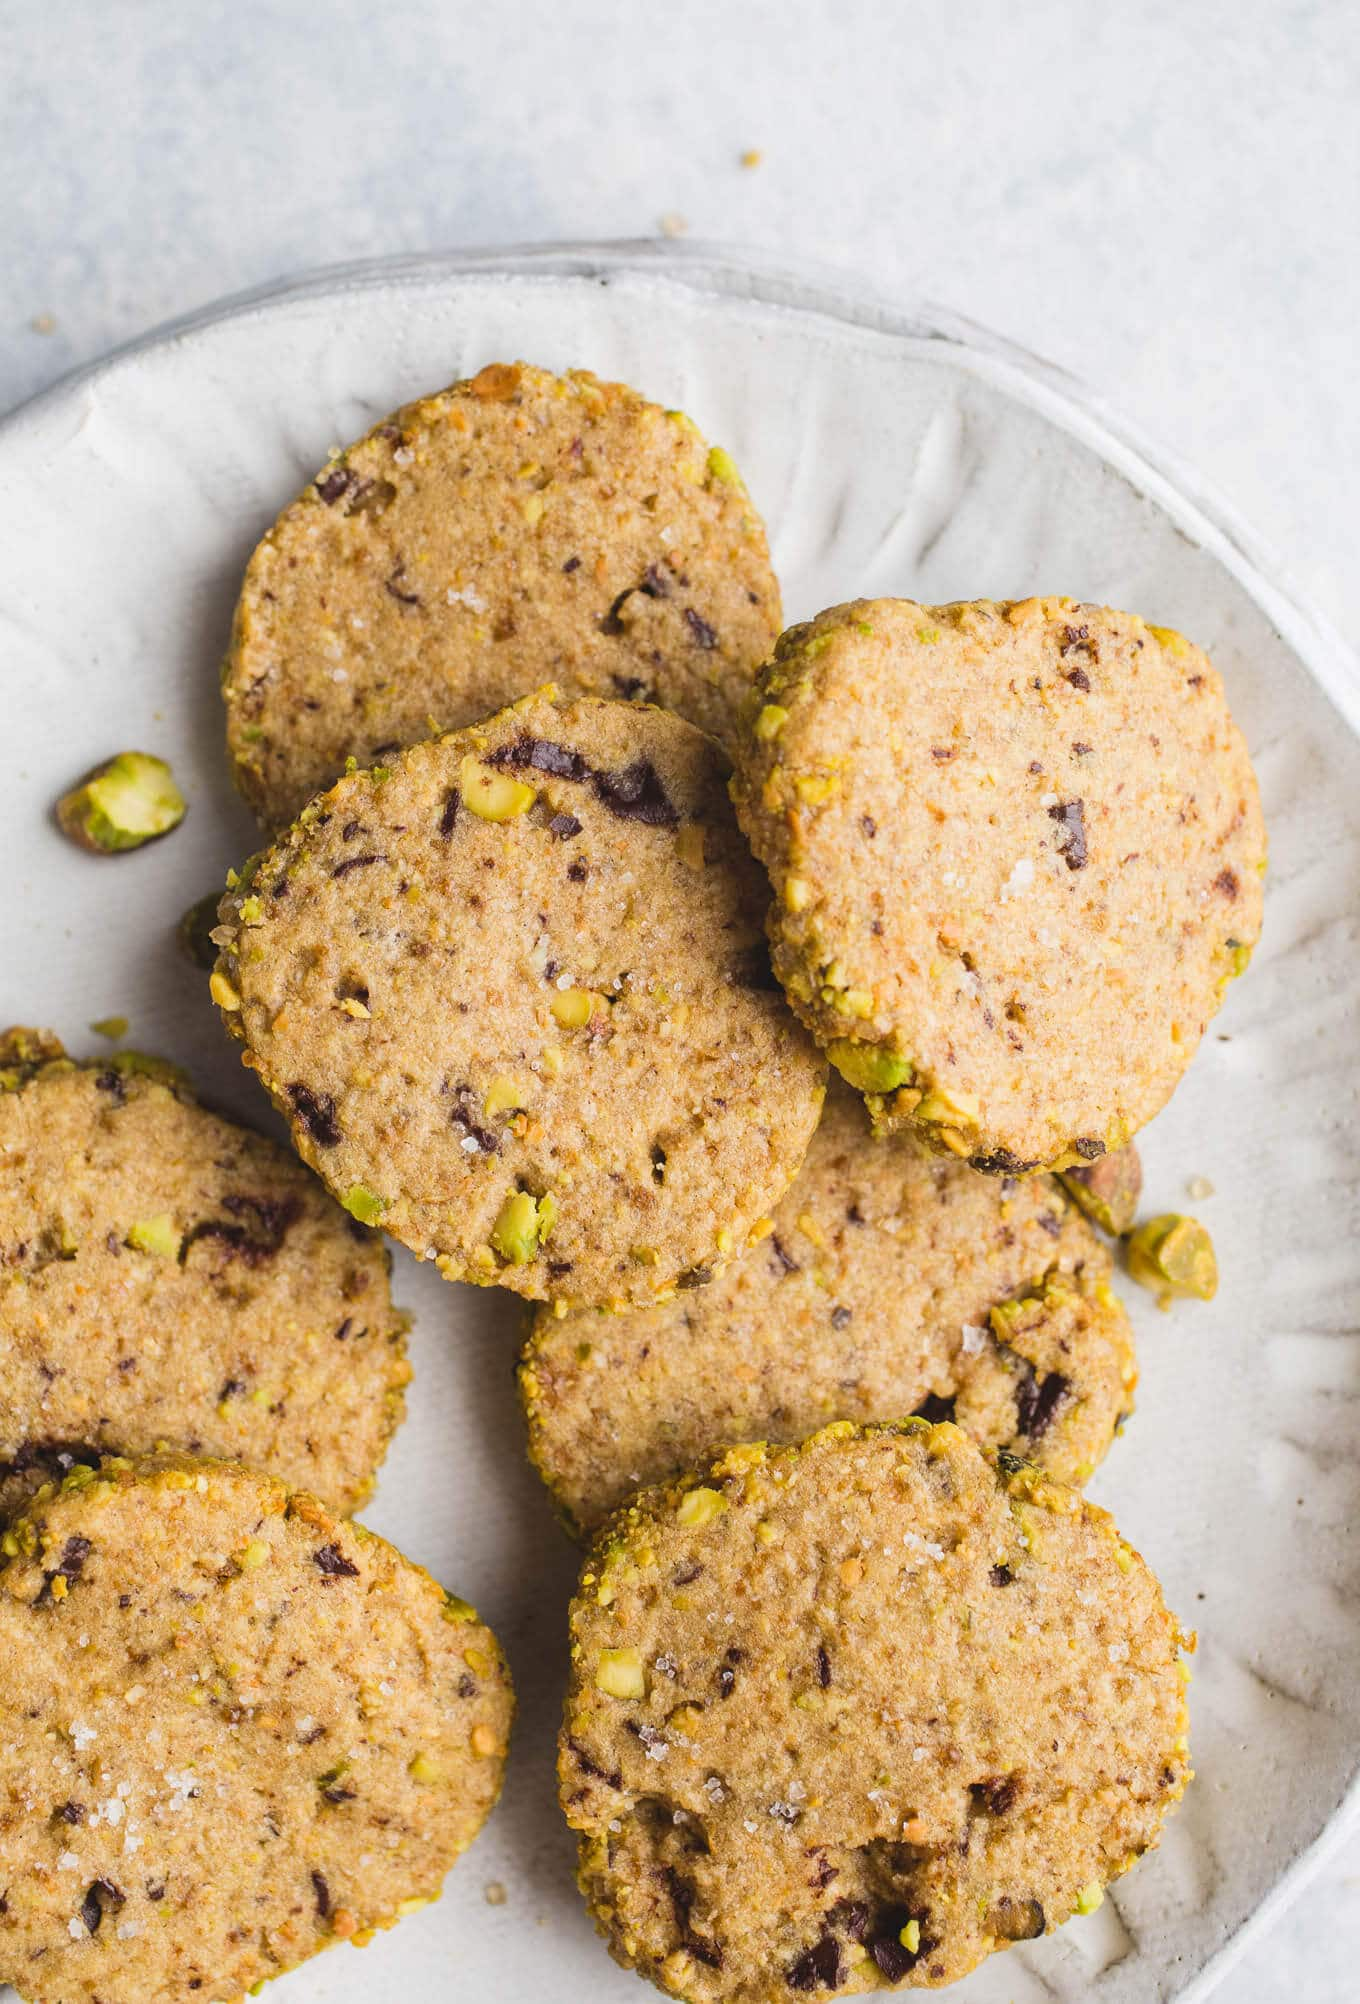 Gluten-Free Pistachio Shortbread Cookies are made with gluten-free flours, raw pistachios, and chopped chocolate for a sweet, buttery treat.